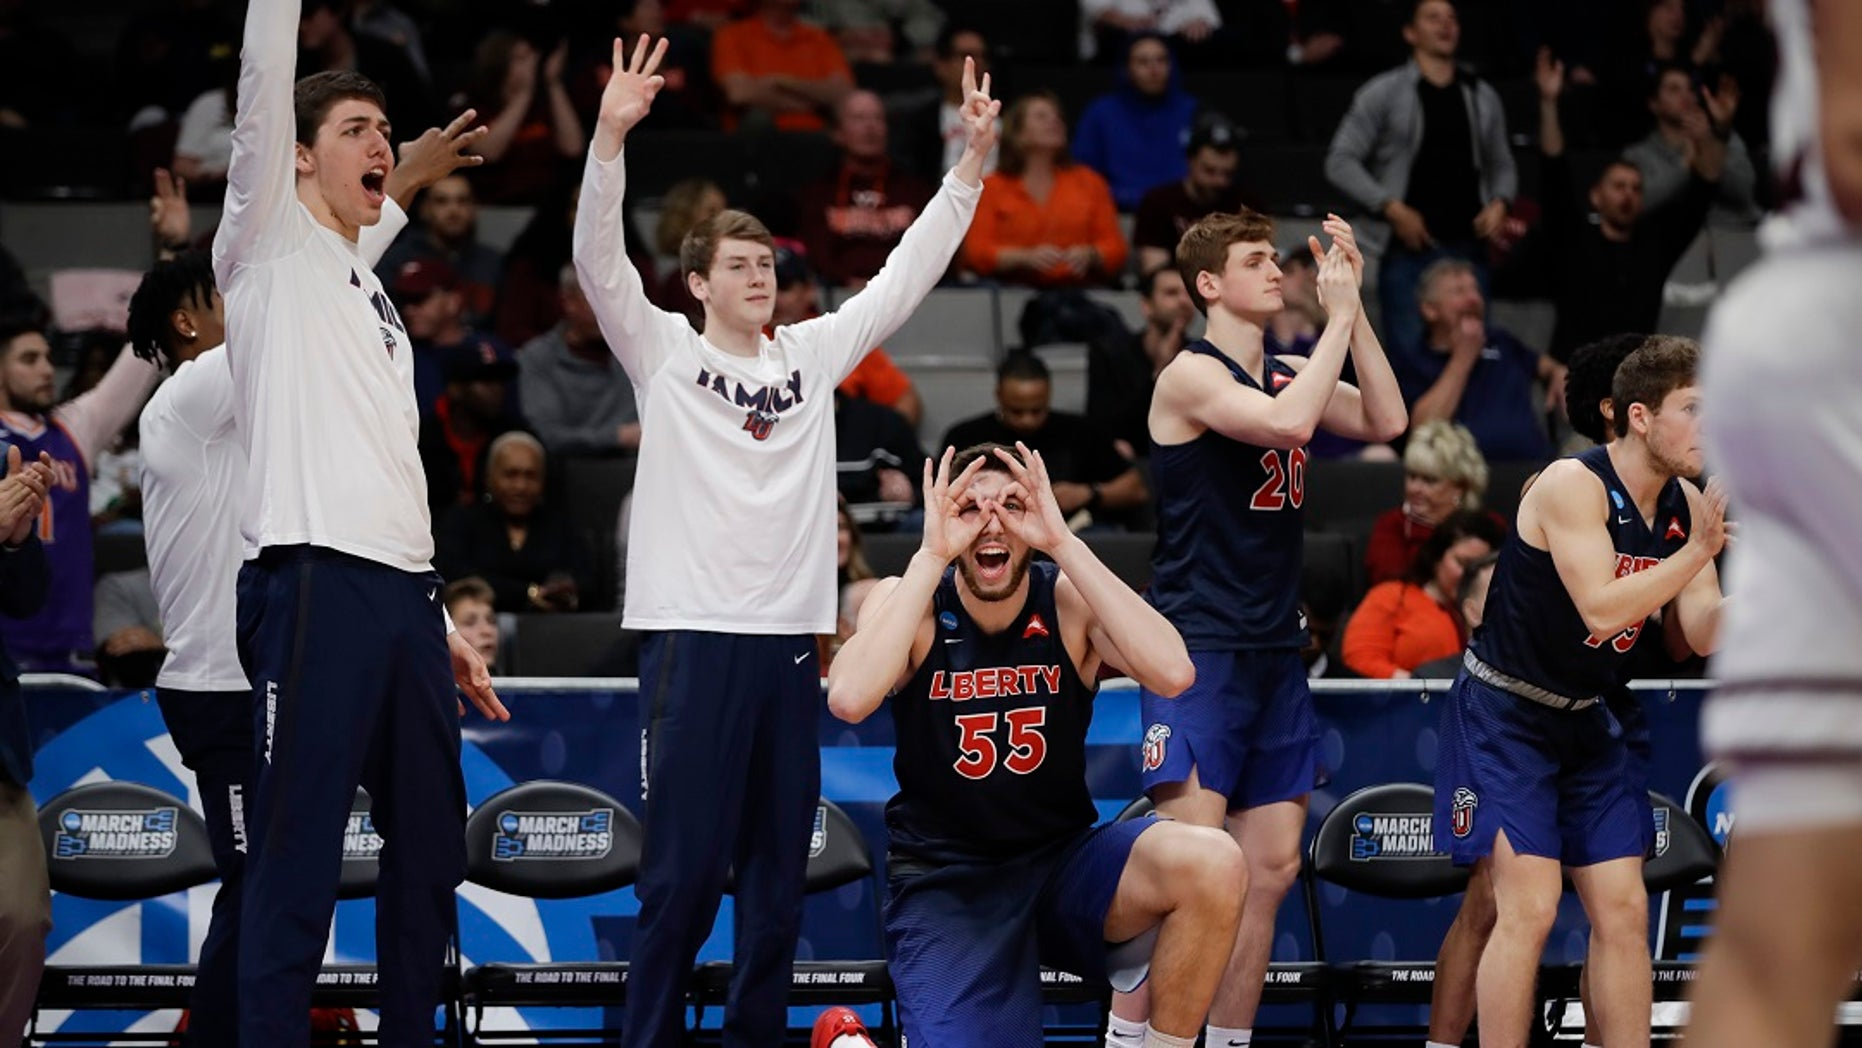 Liberty players celebrate during the second half against Mississippi State in a first-round game in the NCAA men's college basketball tournament Friday, March 22, 2019, in San Jose, Calif. (Associated Press)